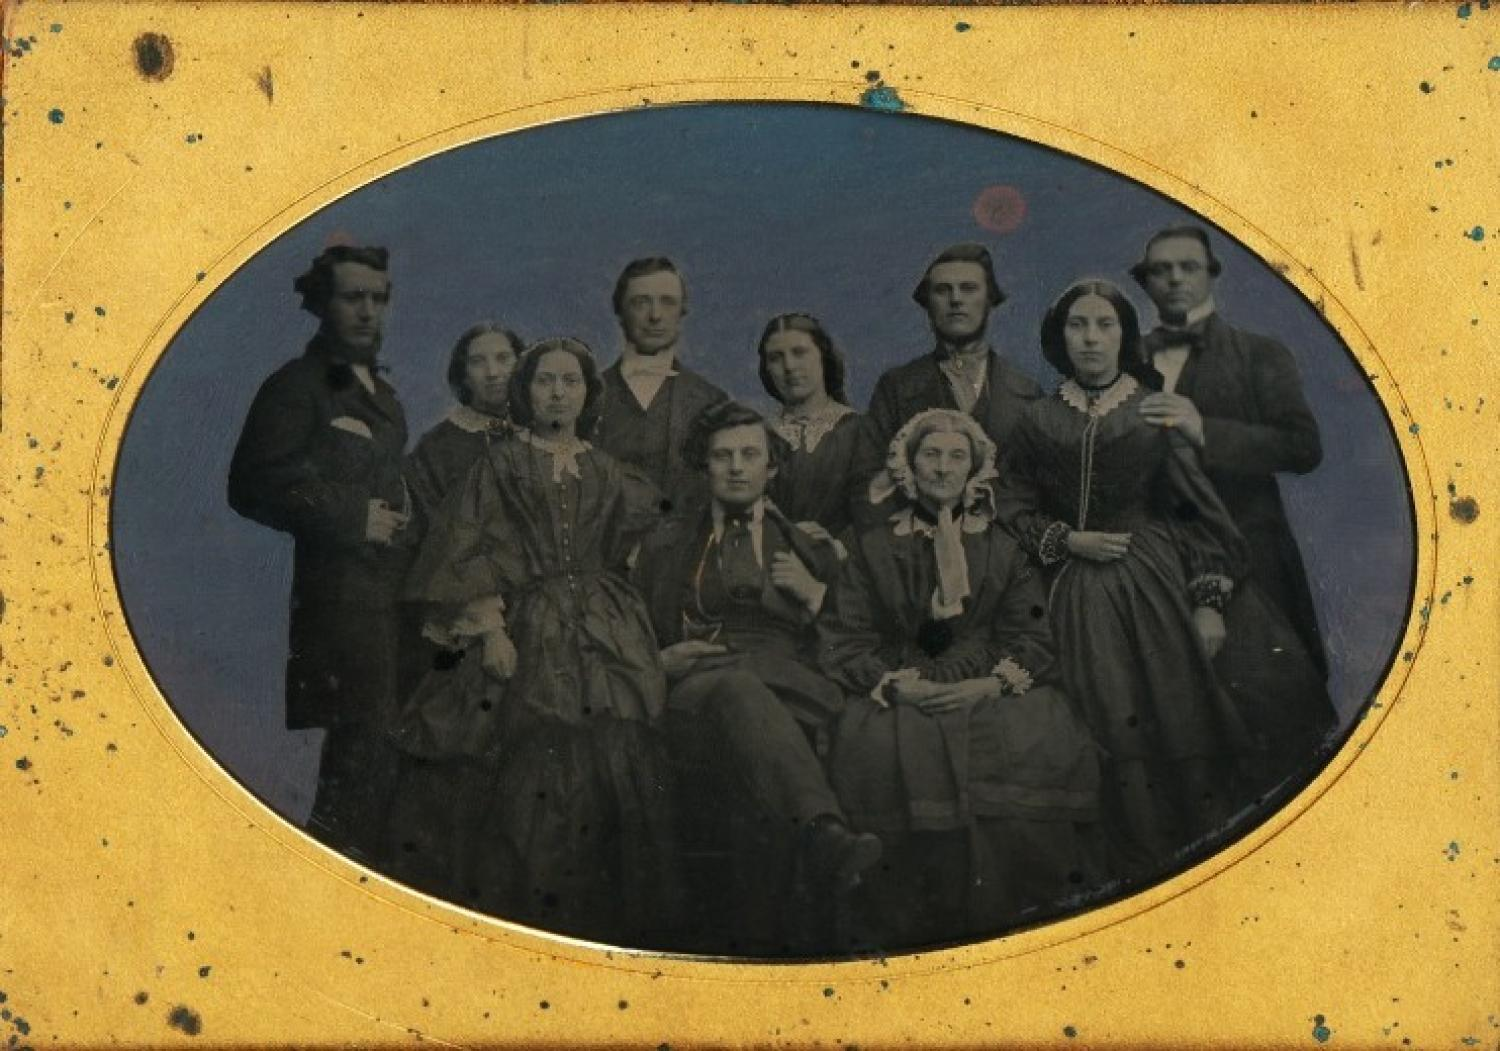 3/4 Plate Ambrotype Family Group of 10 People